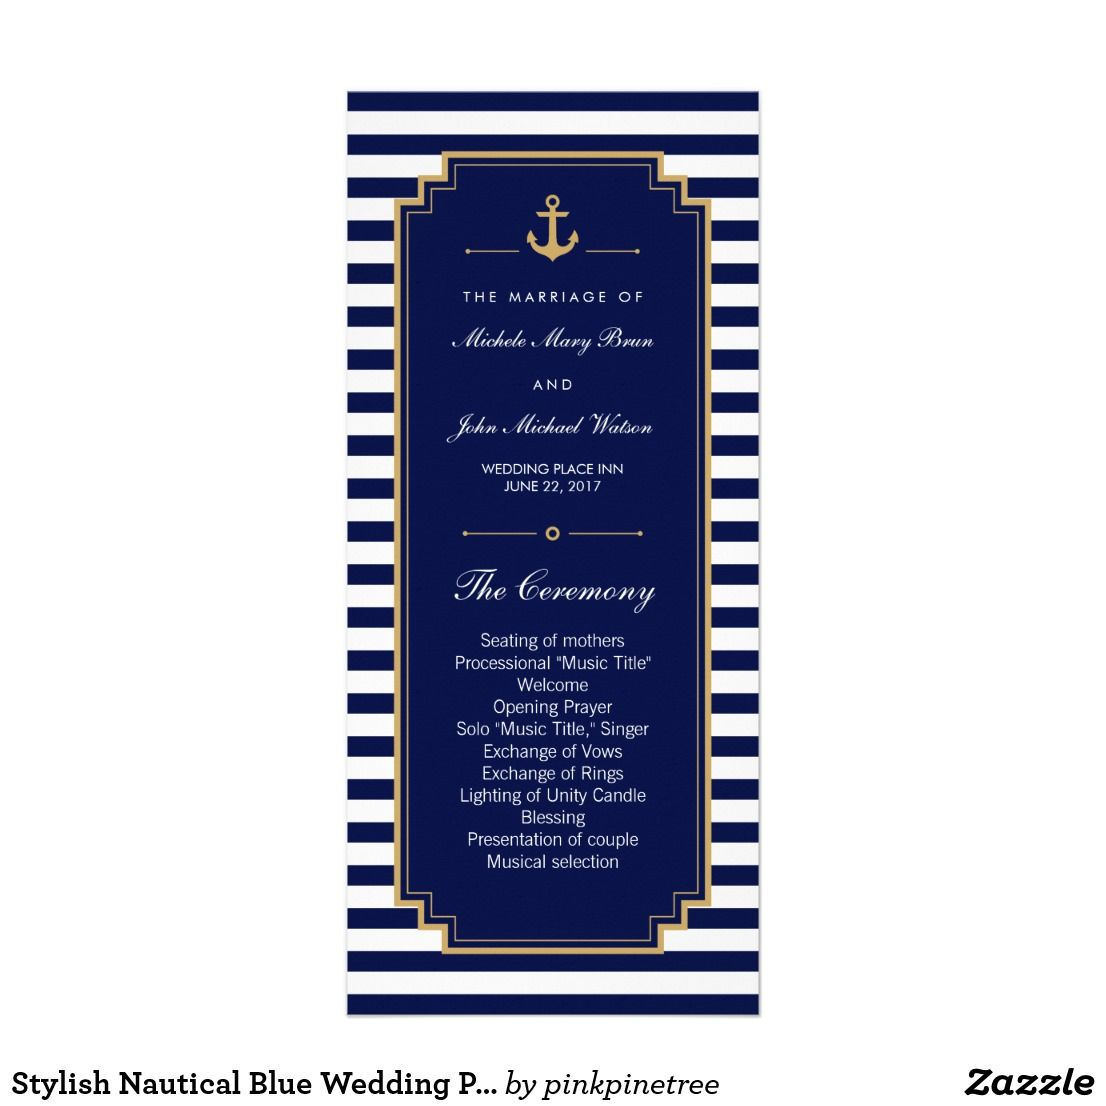 Stylish nautical blue wedding program rack cards wedding programs stylish nautical blue wedding program rack cards stopboris Gallery